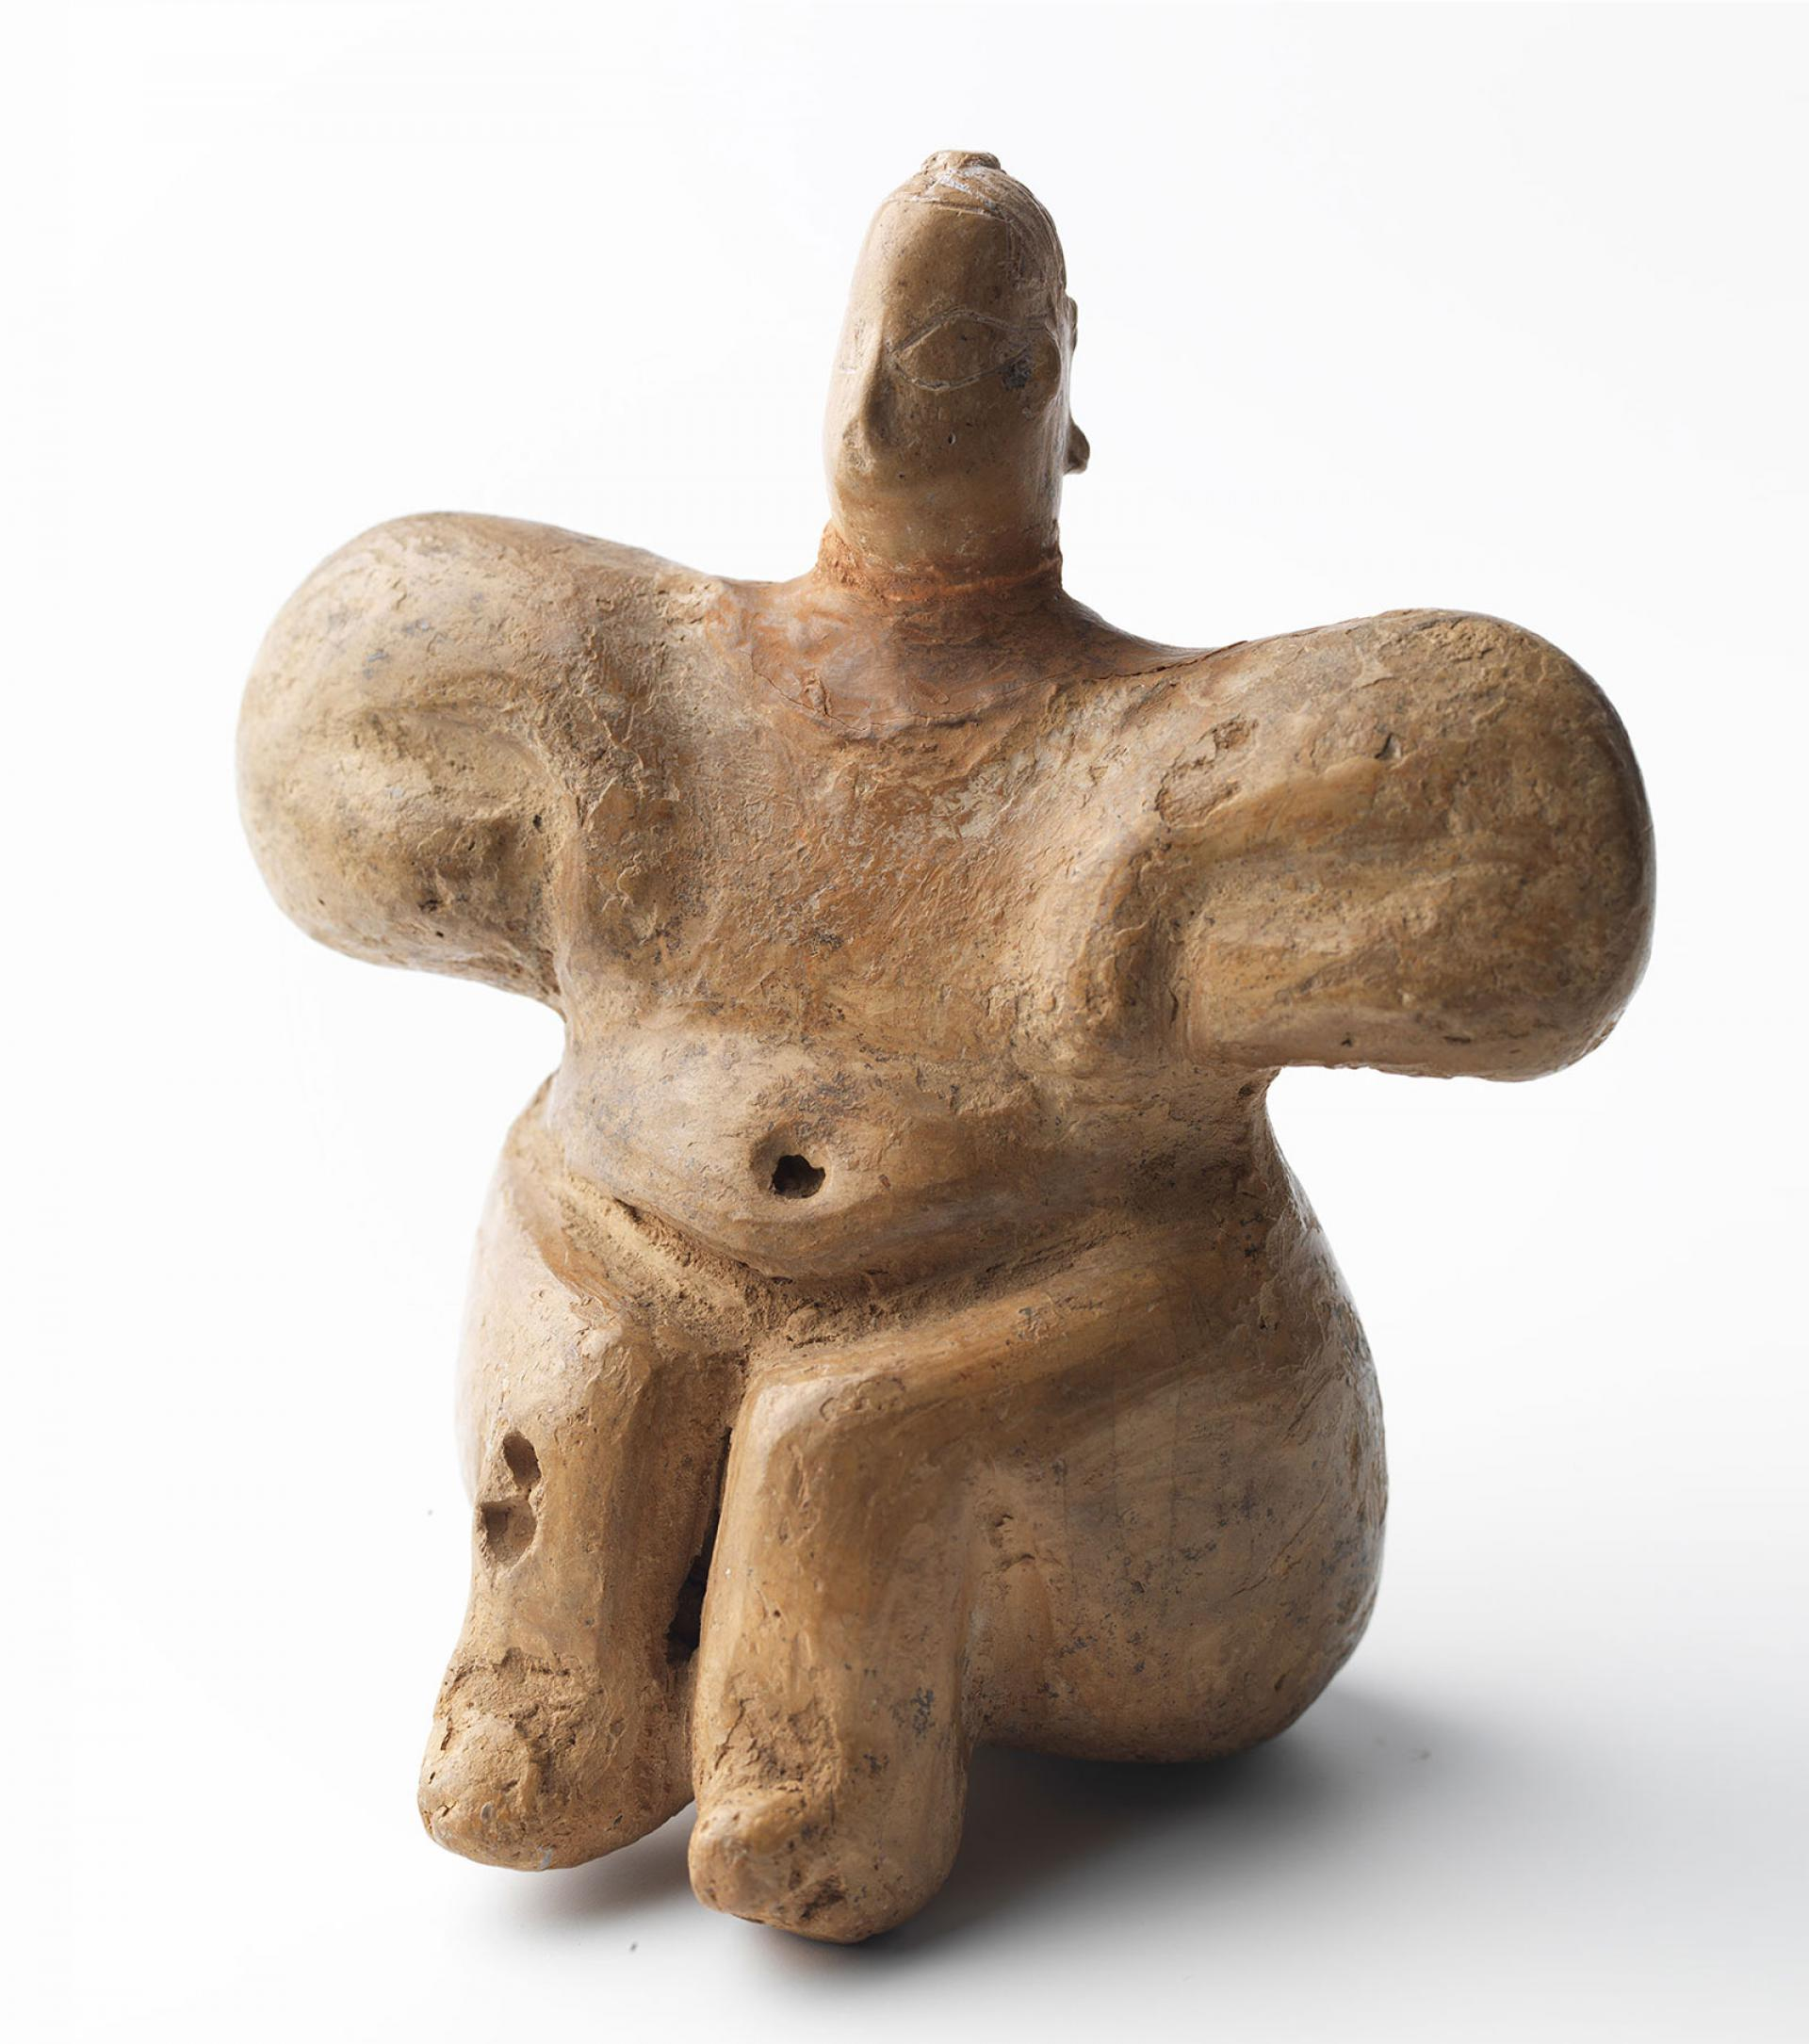 SHM 4604 - Female figurineTerracottaLate Neolithic AgeFirst half of 6th millenium BCLakes Region